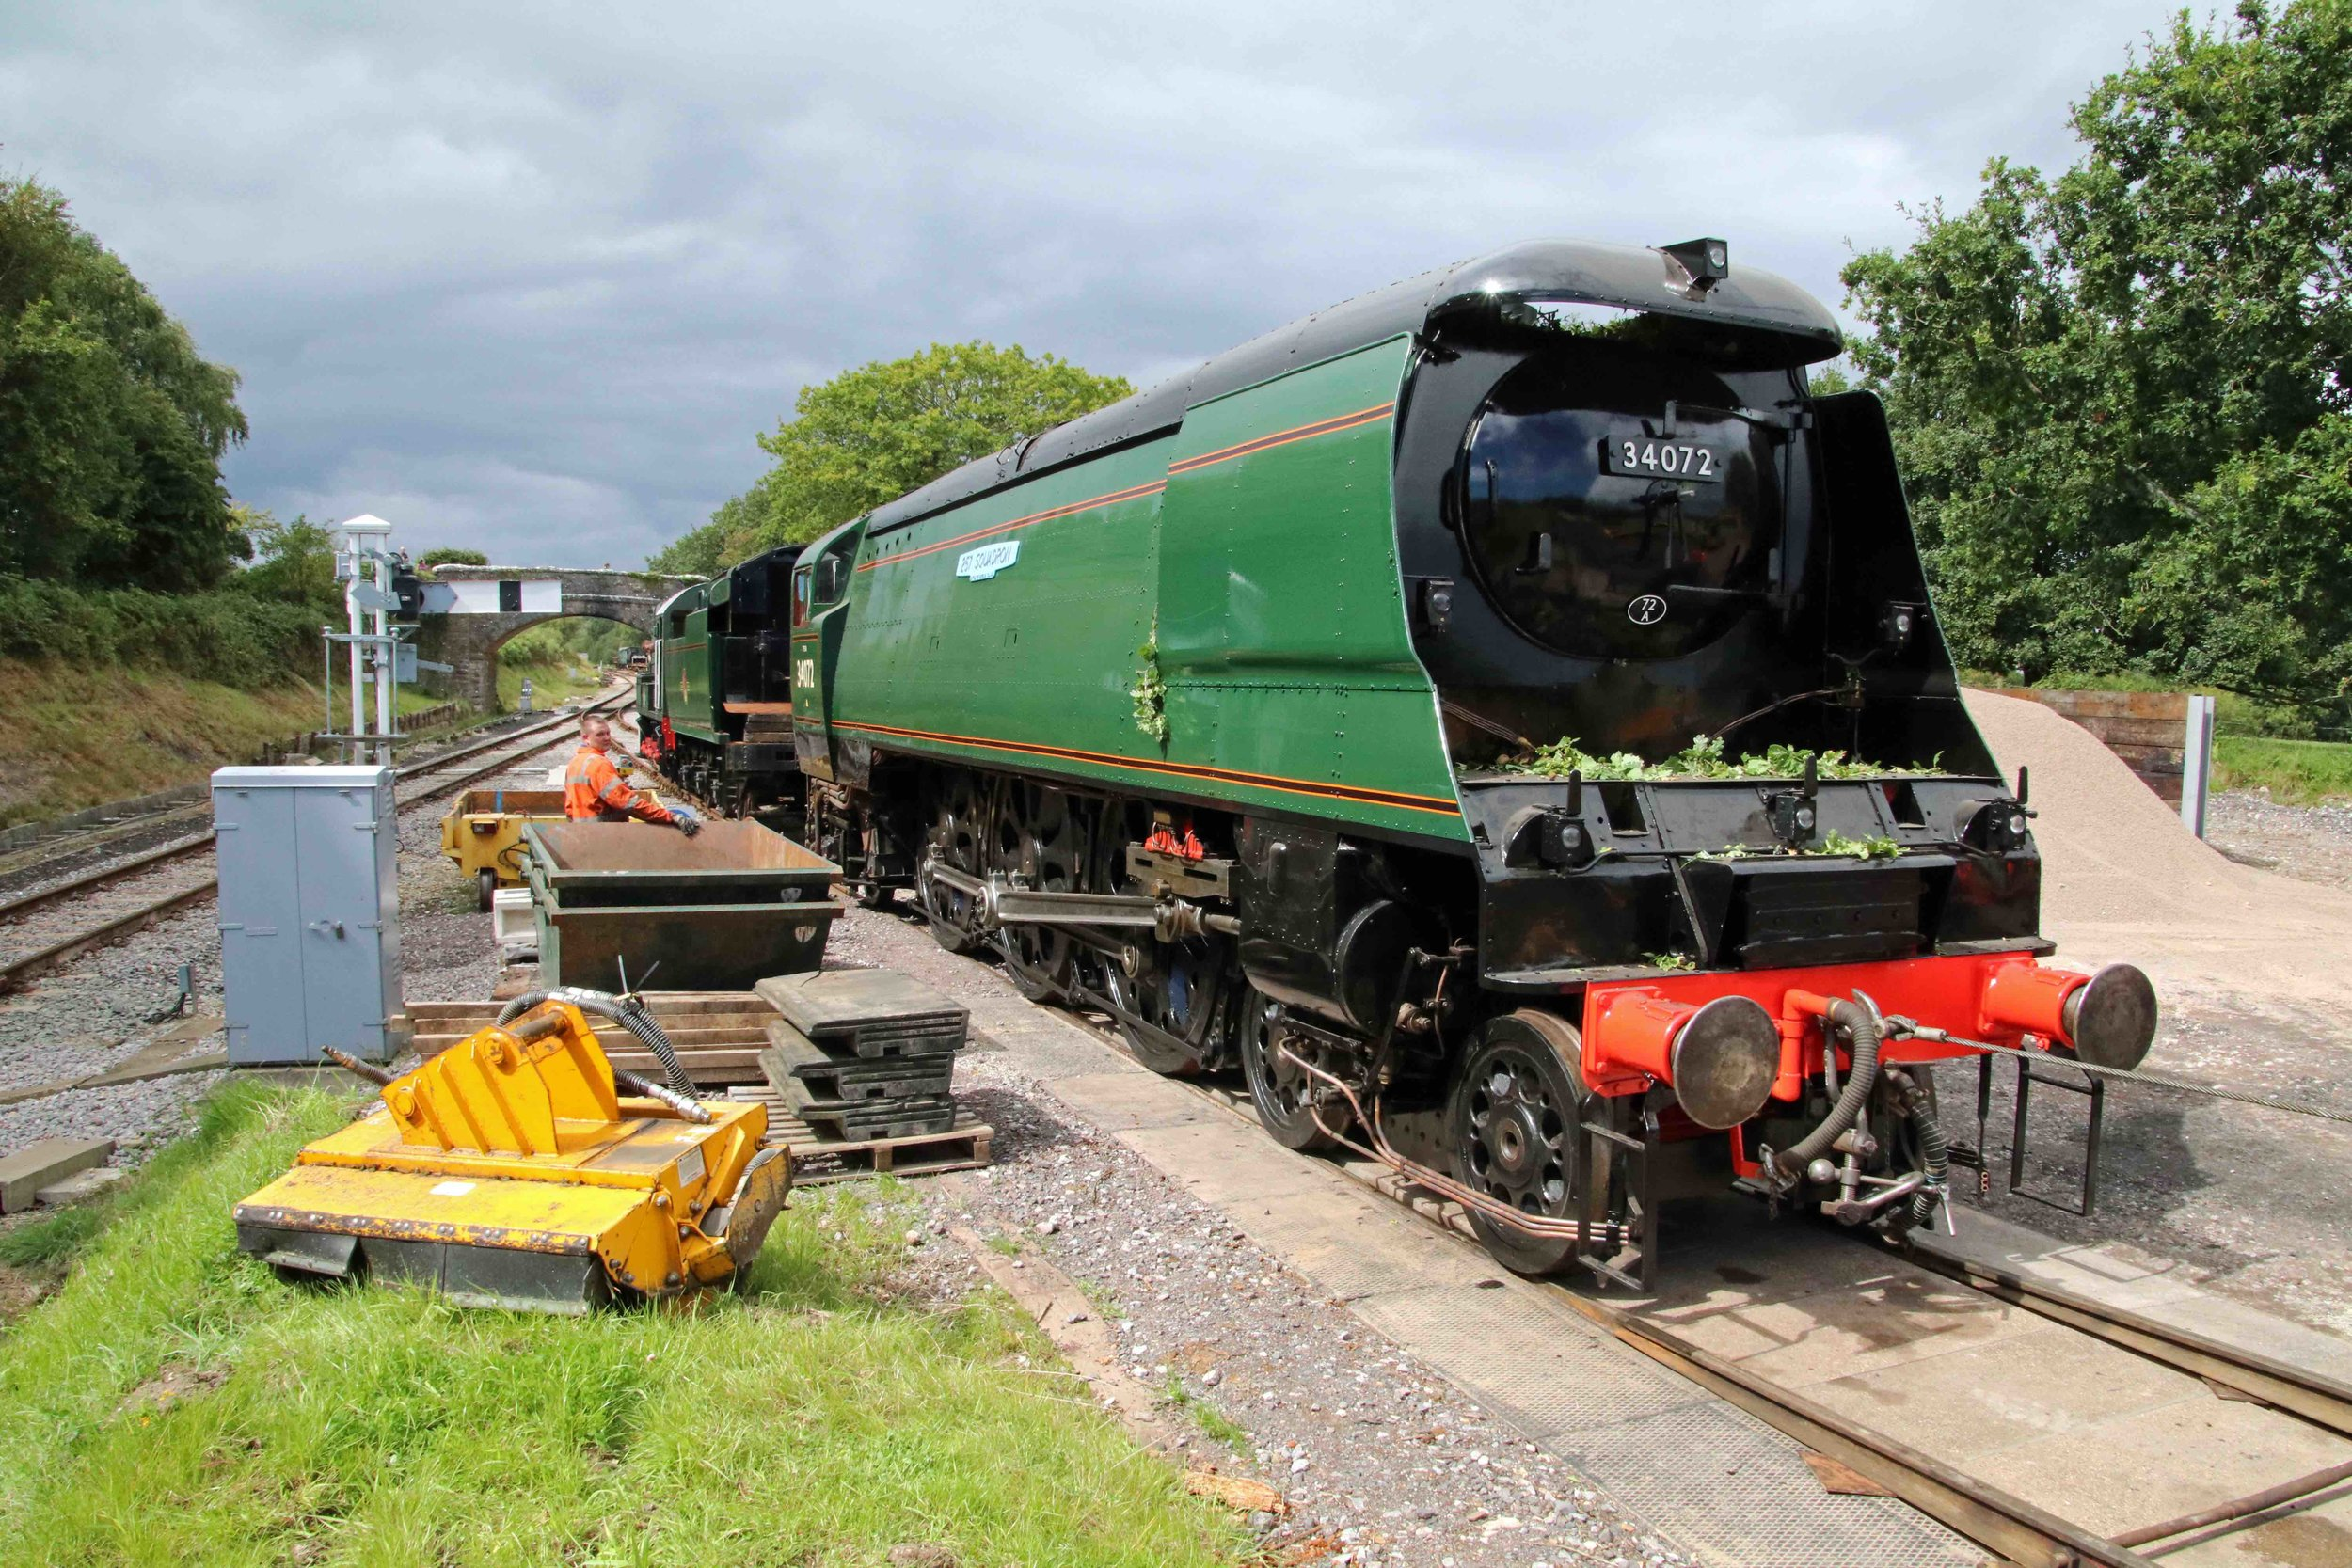 Fresh from overhaul, 'Battle of Britain' No. 34072  257 Squadron  s united with its new-build tender at Norden on the Swanage Railway on August 21. ANDREW P. M. WRIGHT